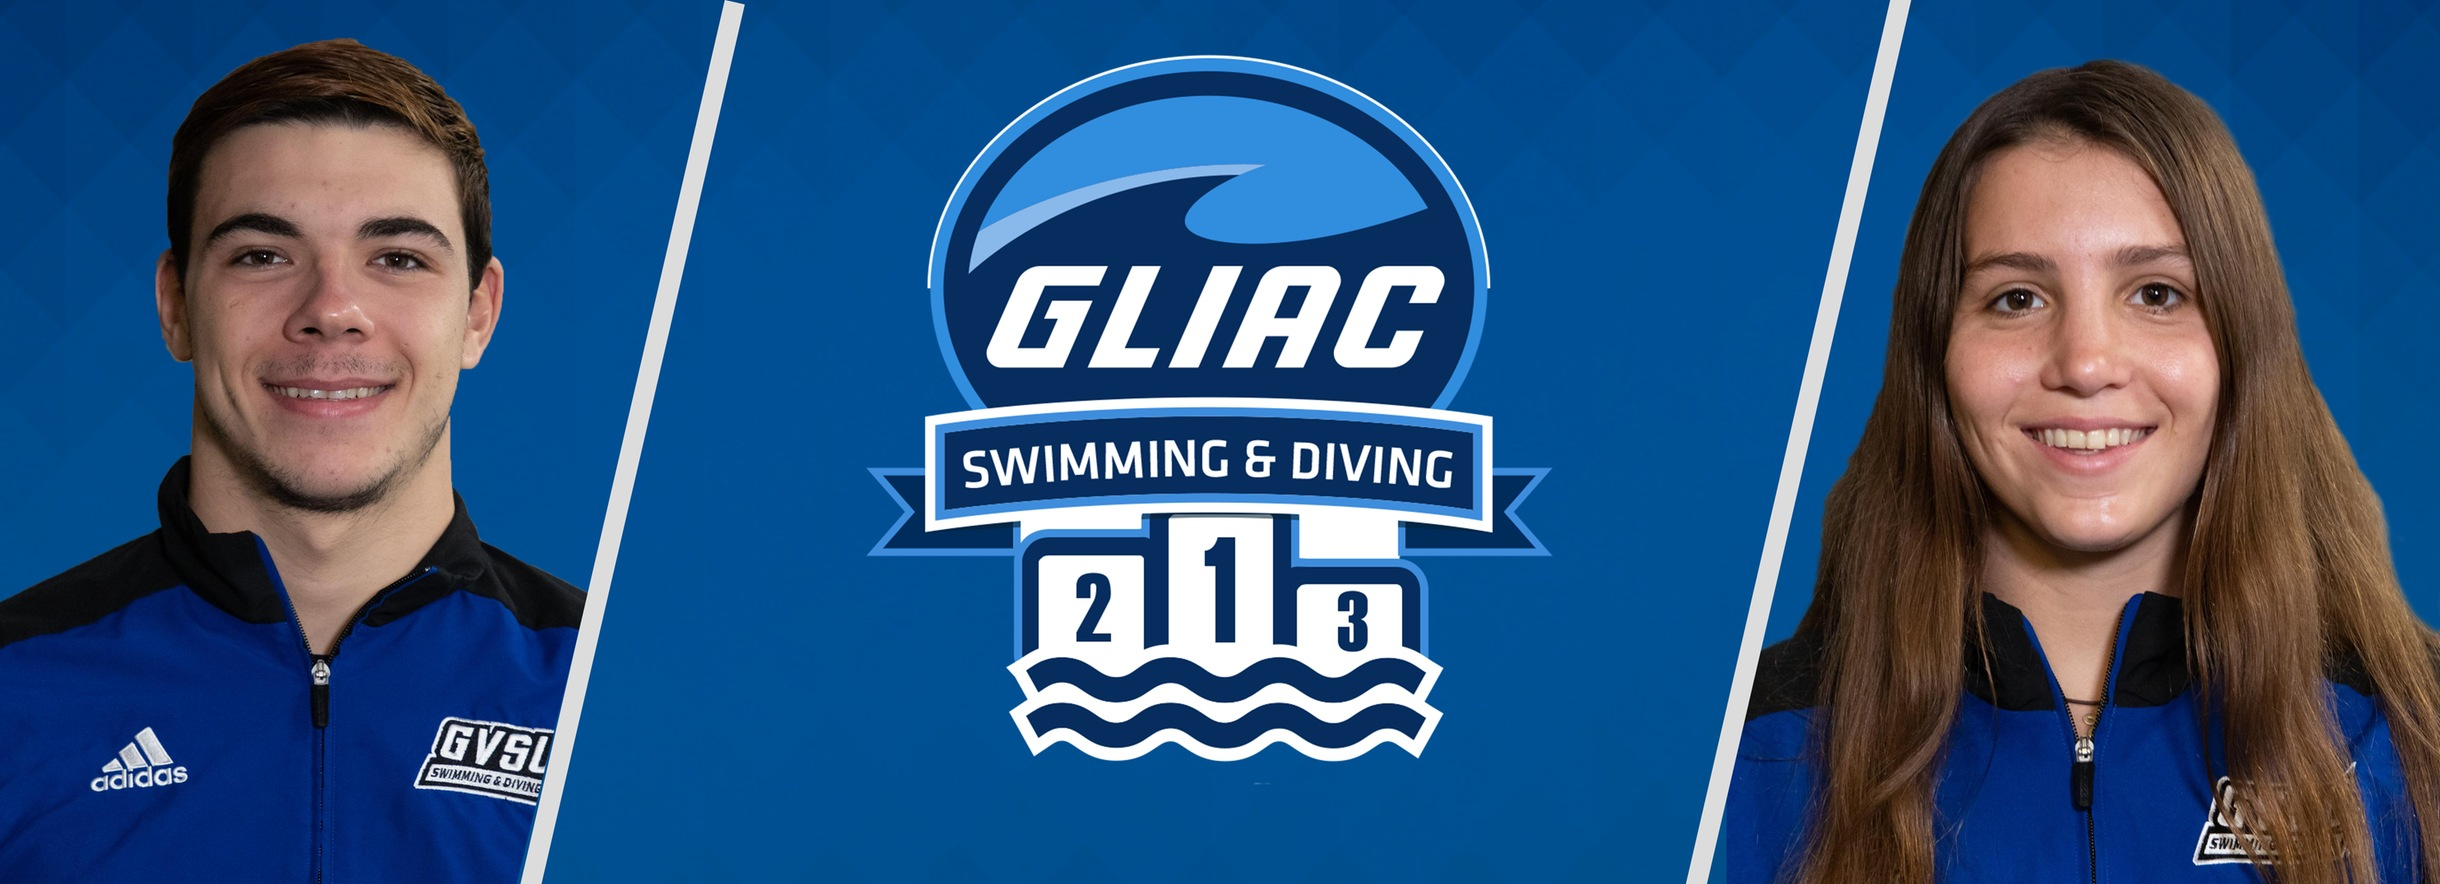 Grand Valley State's Saura-Armengol & Shiff Sweep GLIAC Swimming Athlete of the Week Awards